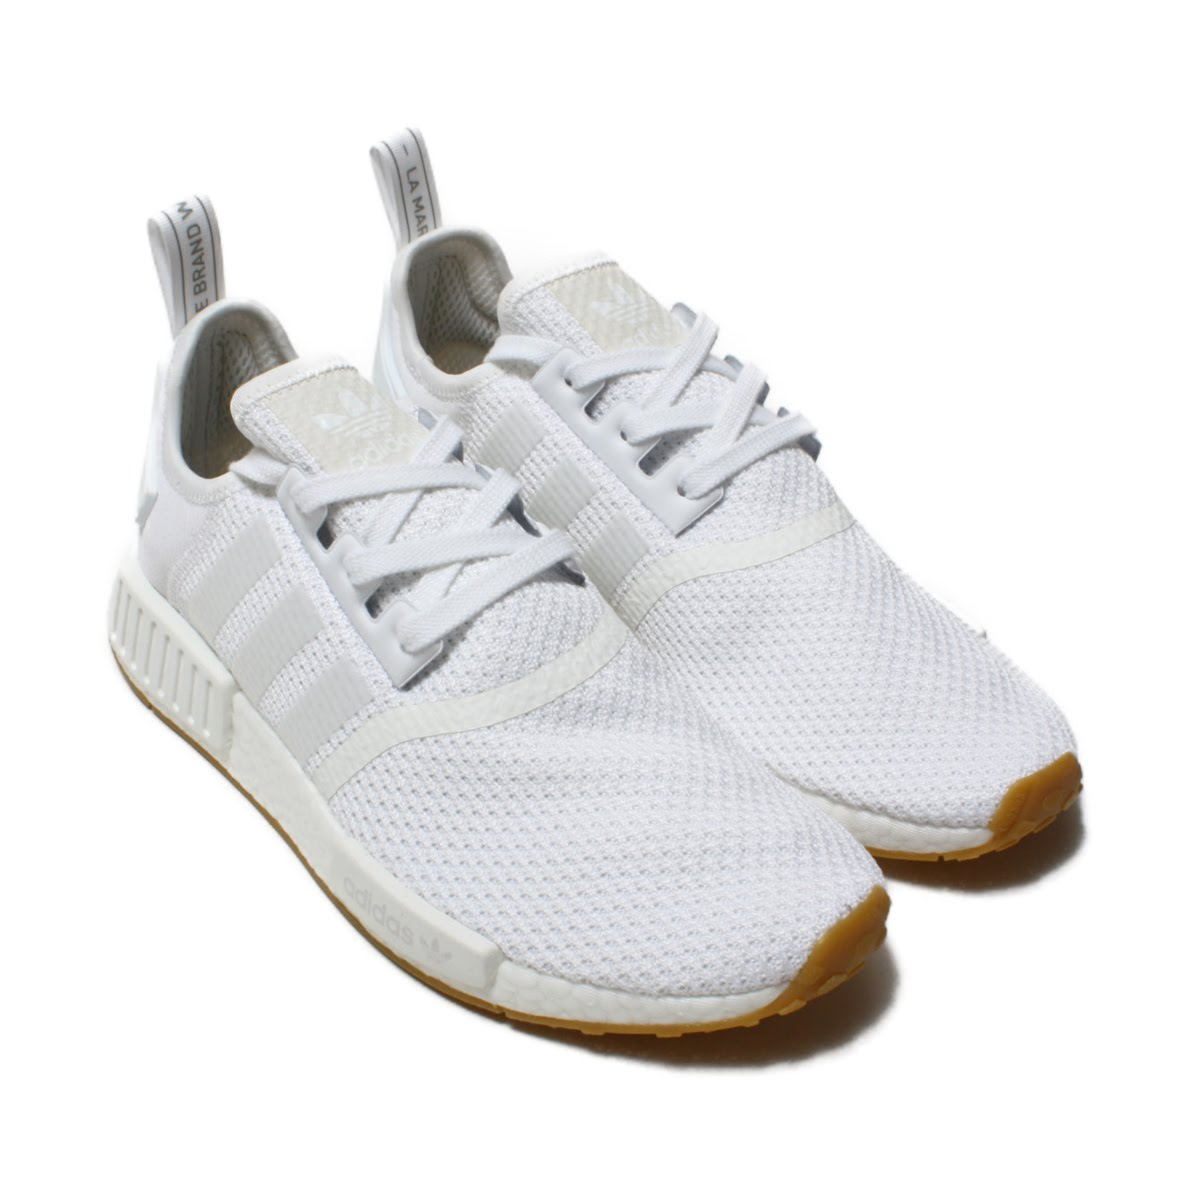 huge selection of b2a3c bbe7b adidas Originals NMD R1 (Adidas N M D R1) Running White/Running White/Gum  18FW-I